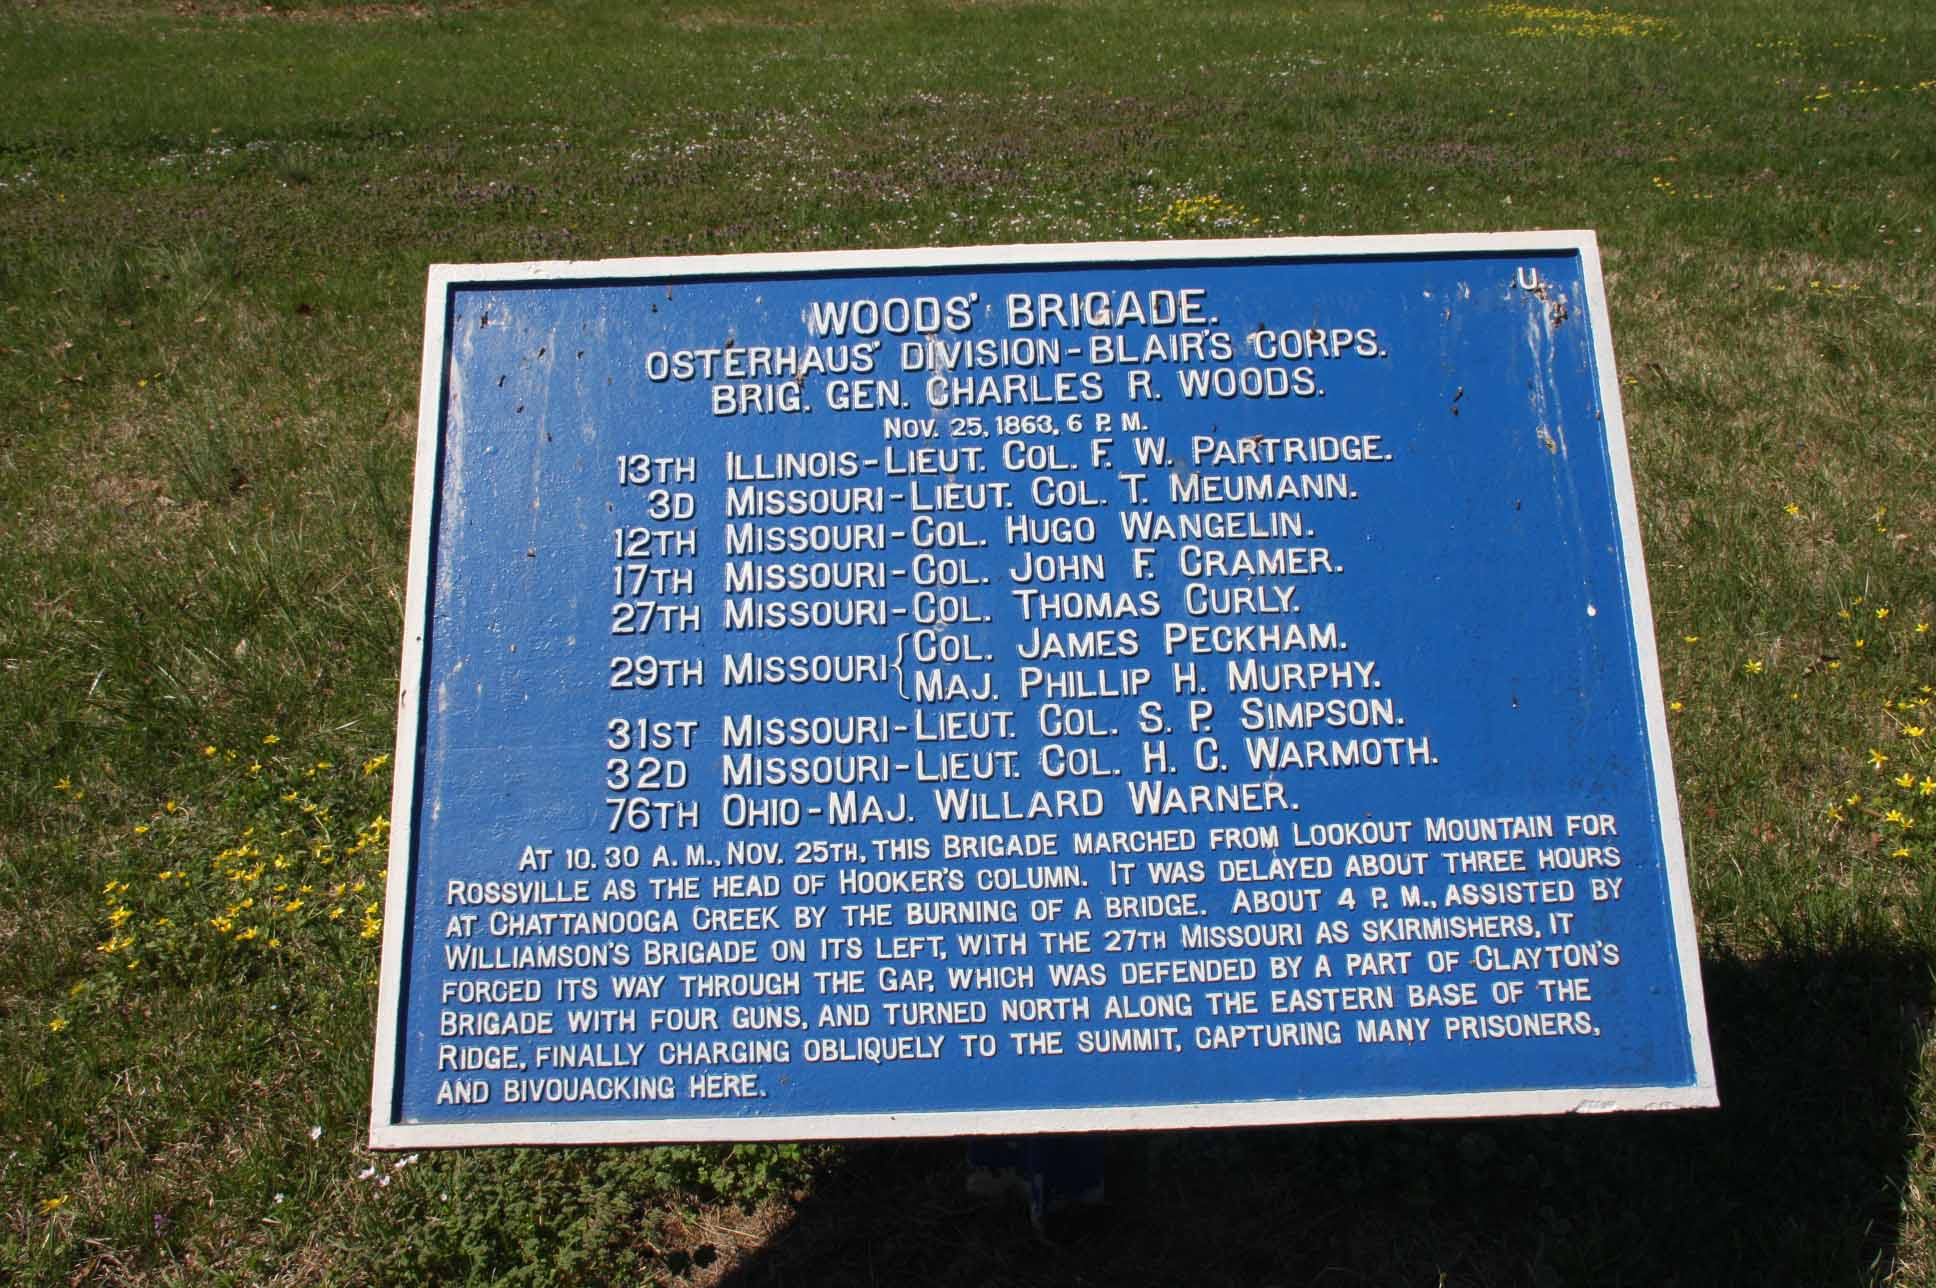 Woods' Brigade Tablet, click photo to enlarge.